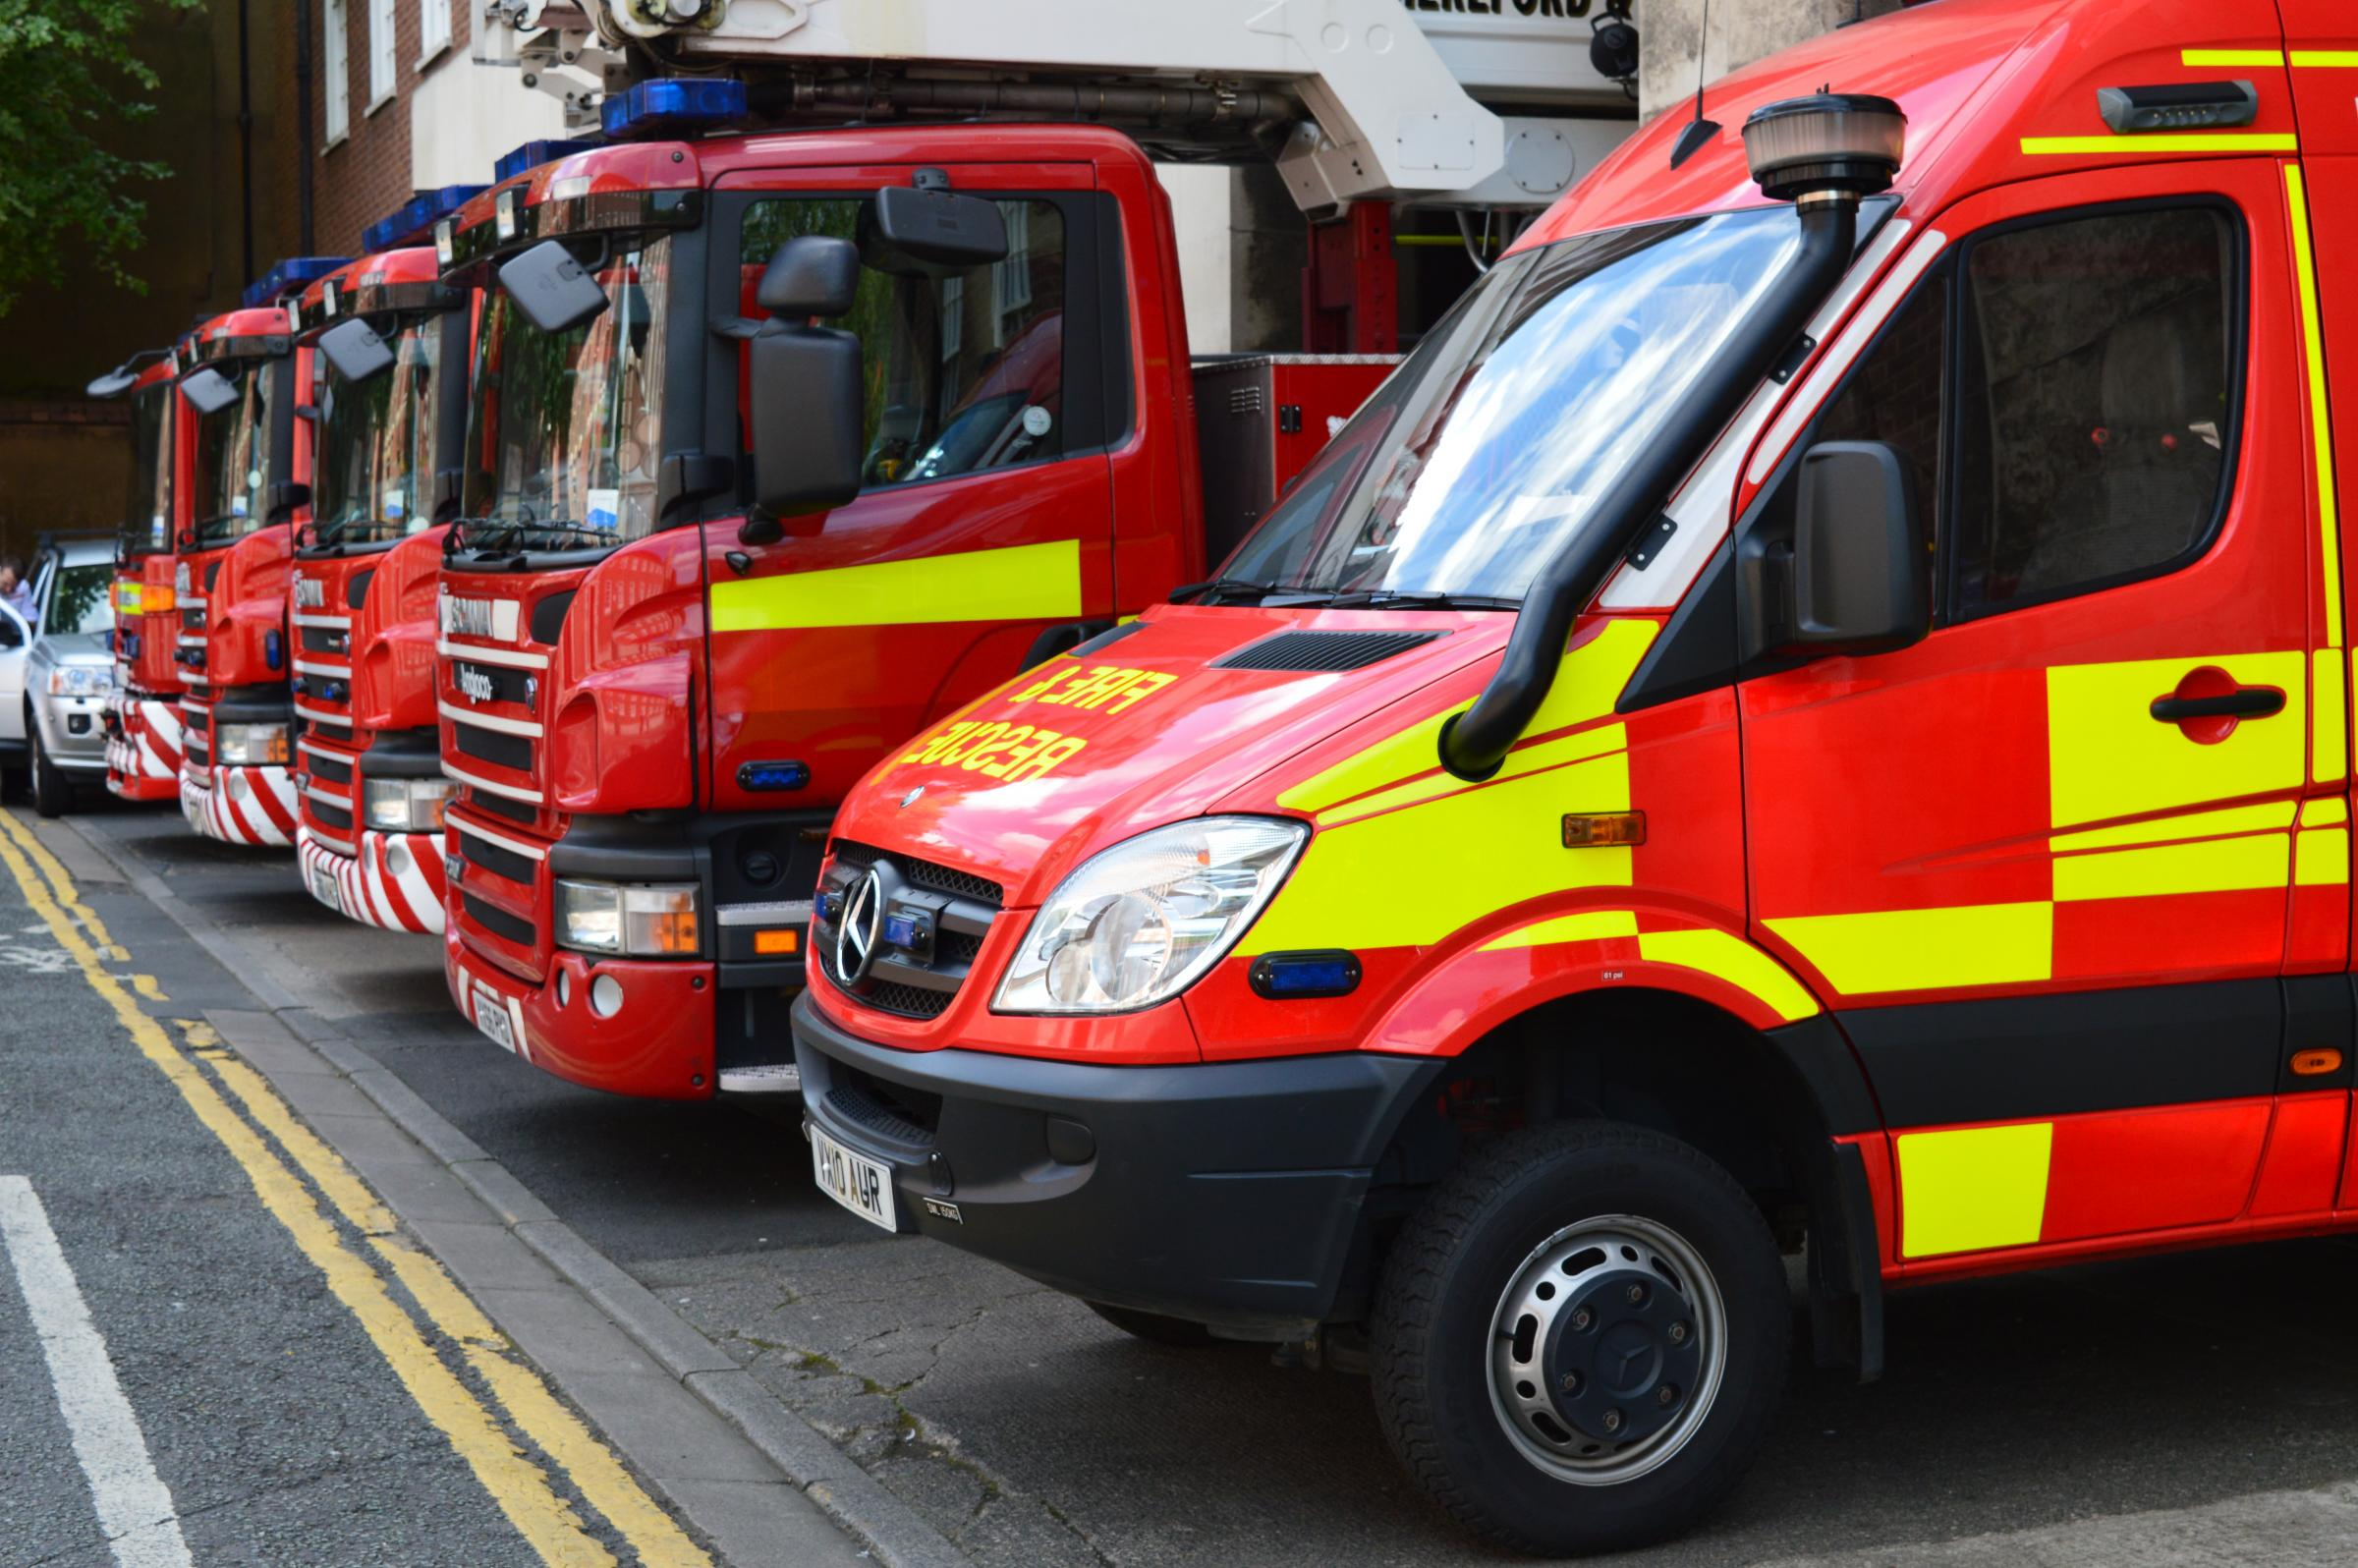 Fire crews were called to a house in Ross-On-Wye just after 1am this morning.